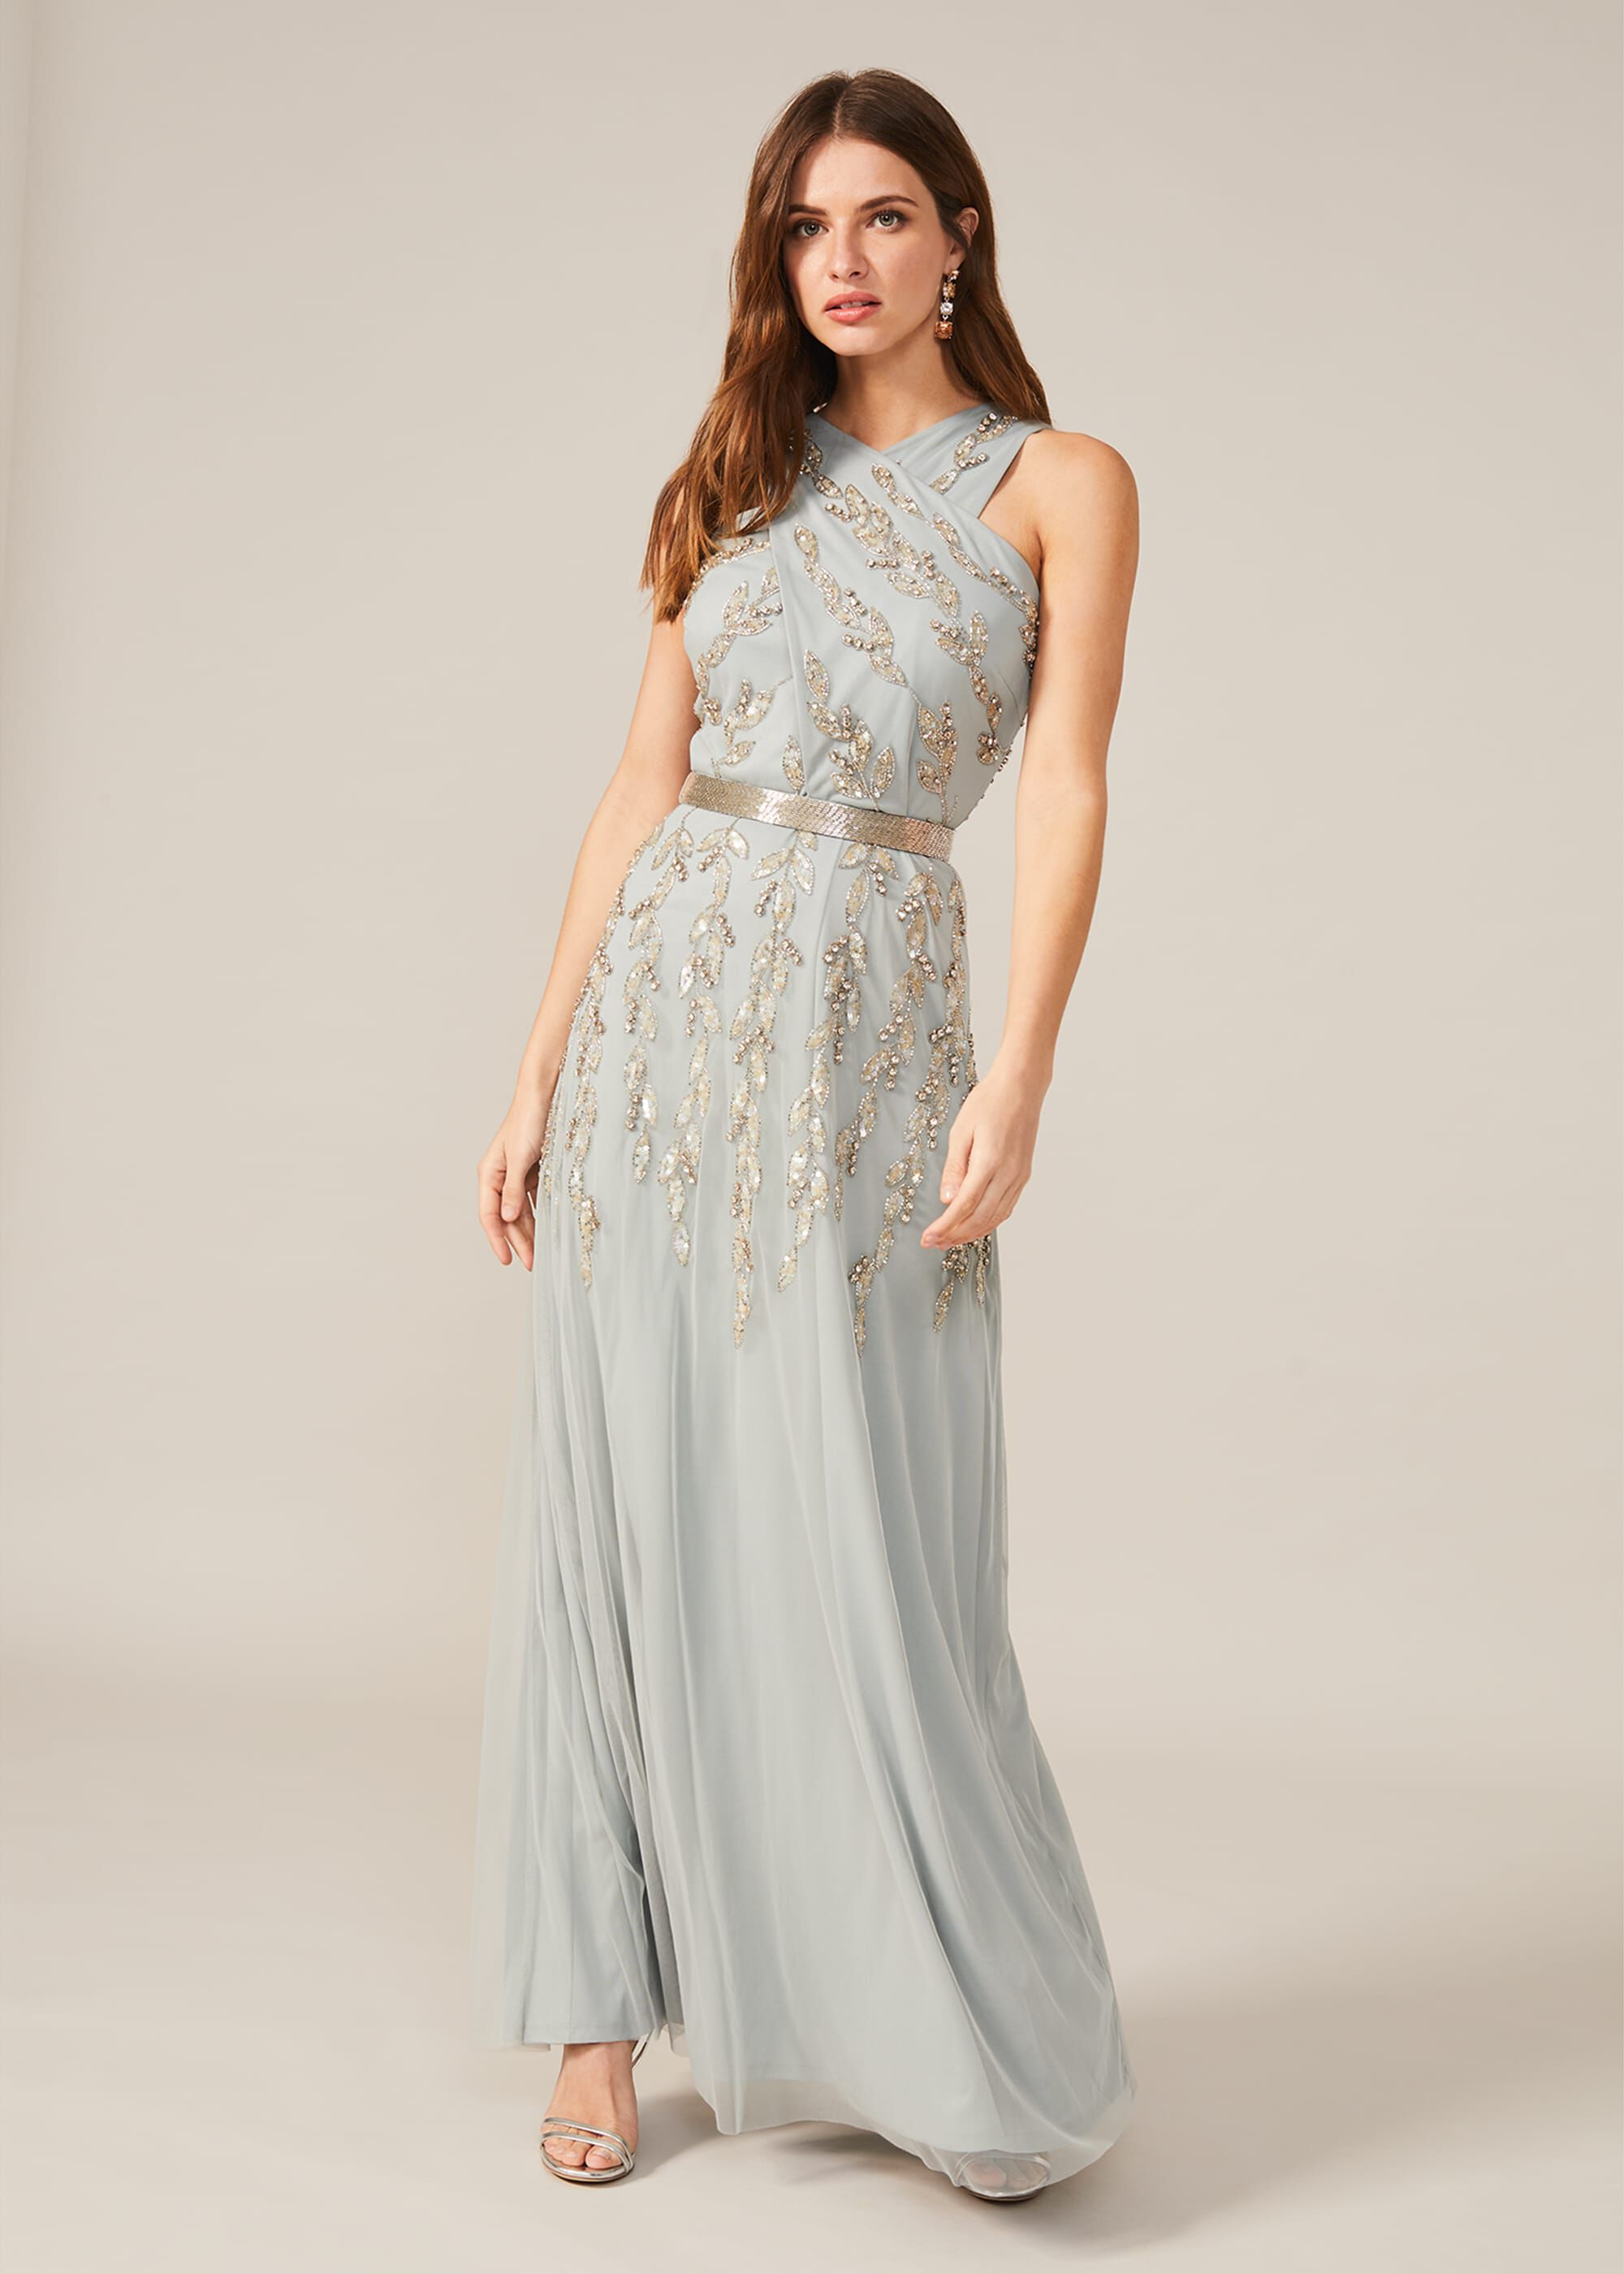 Phase Eight Hallie Embellished Maxi Dress, Blue, Occasion Dress